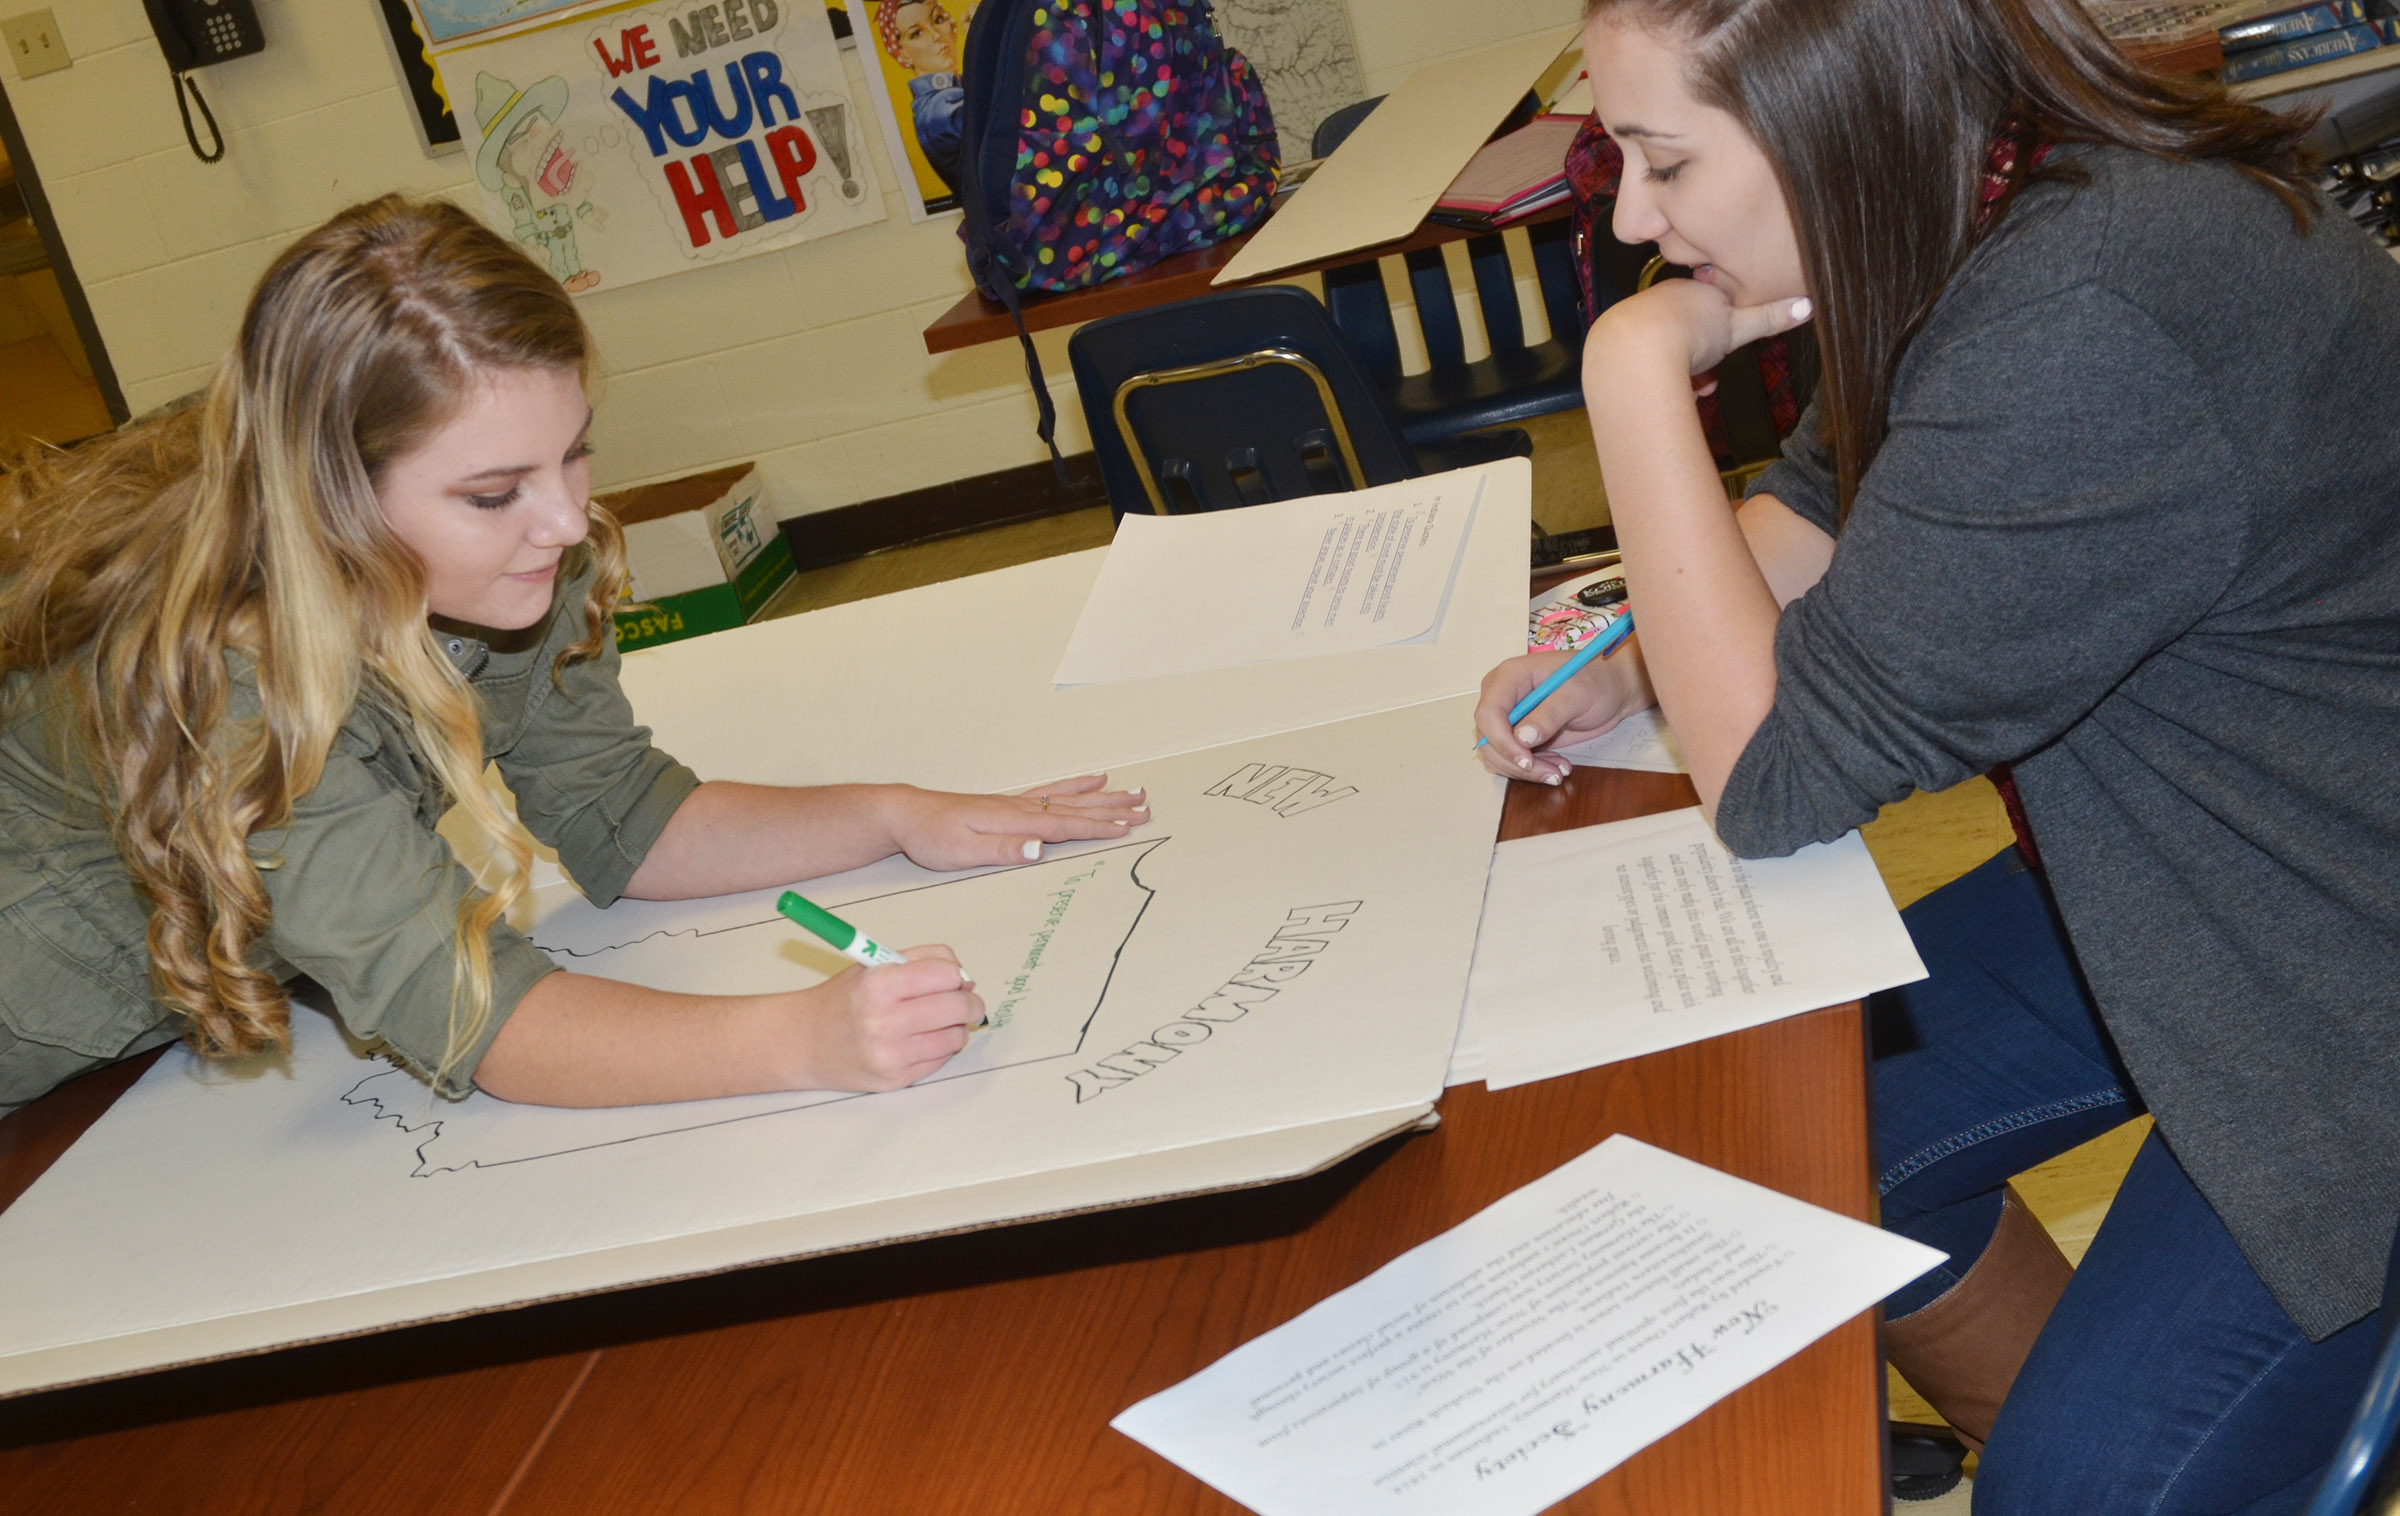 CHS juniors Hayley Stapleton, at left, and Elizabeth Sullivan work on a project together.